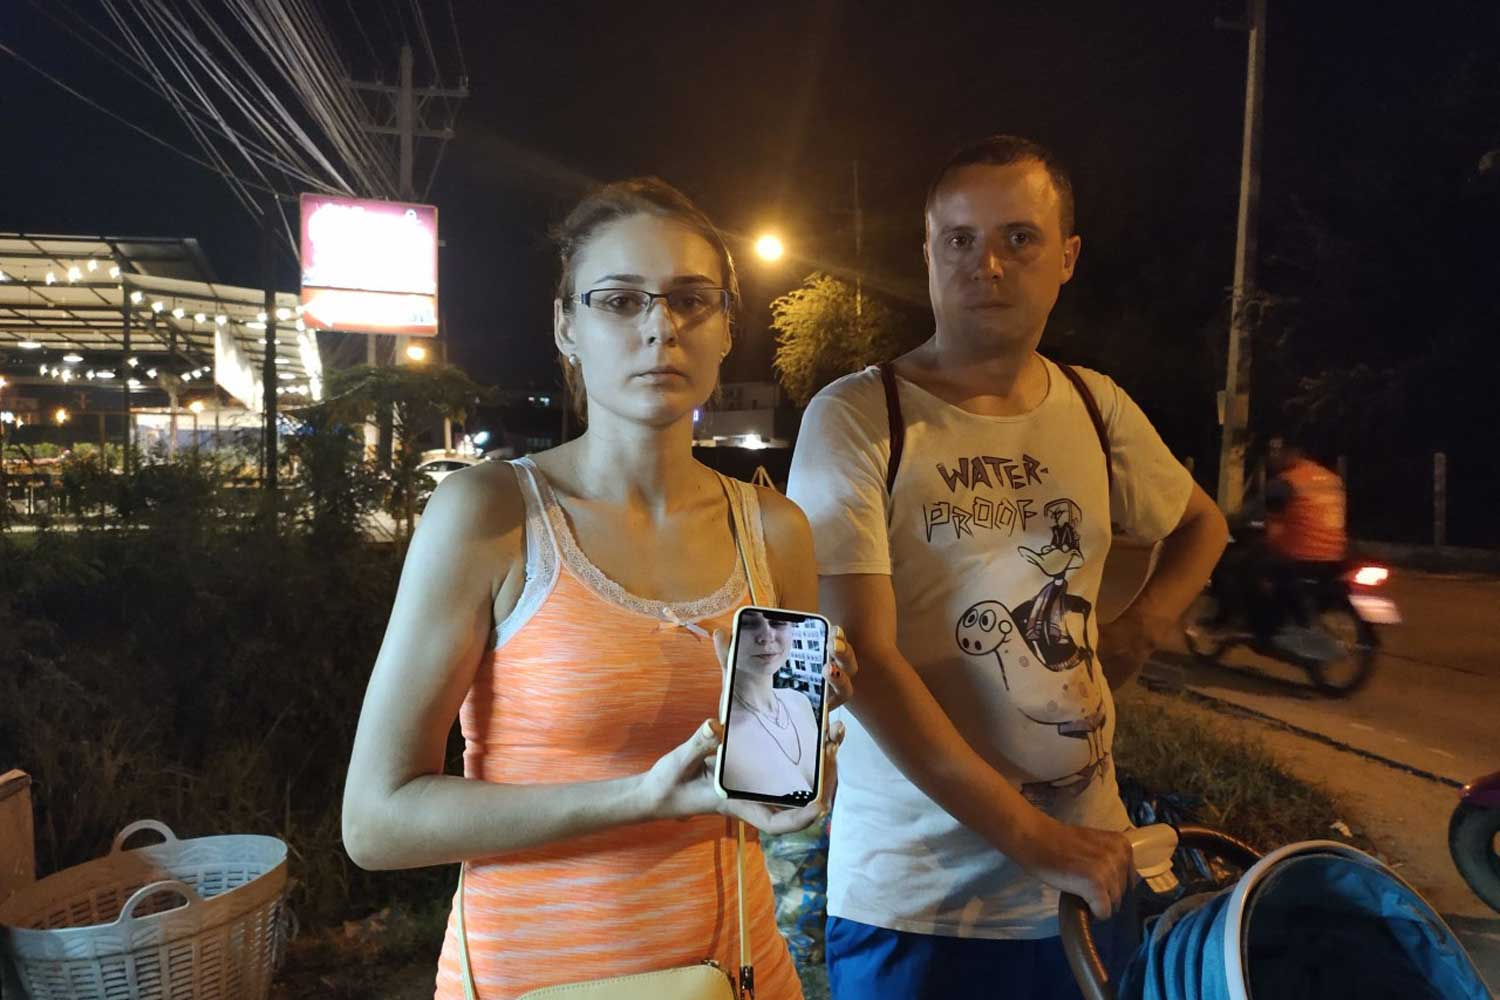 Pankratova Elena, 25, shows a picture of herself wearing the gold necklaces stolen by a motorcyclist in Pattaya on Sunday night. (Photo by Chaiyot Pupattanapong)